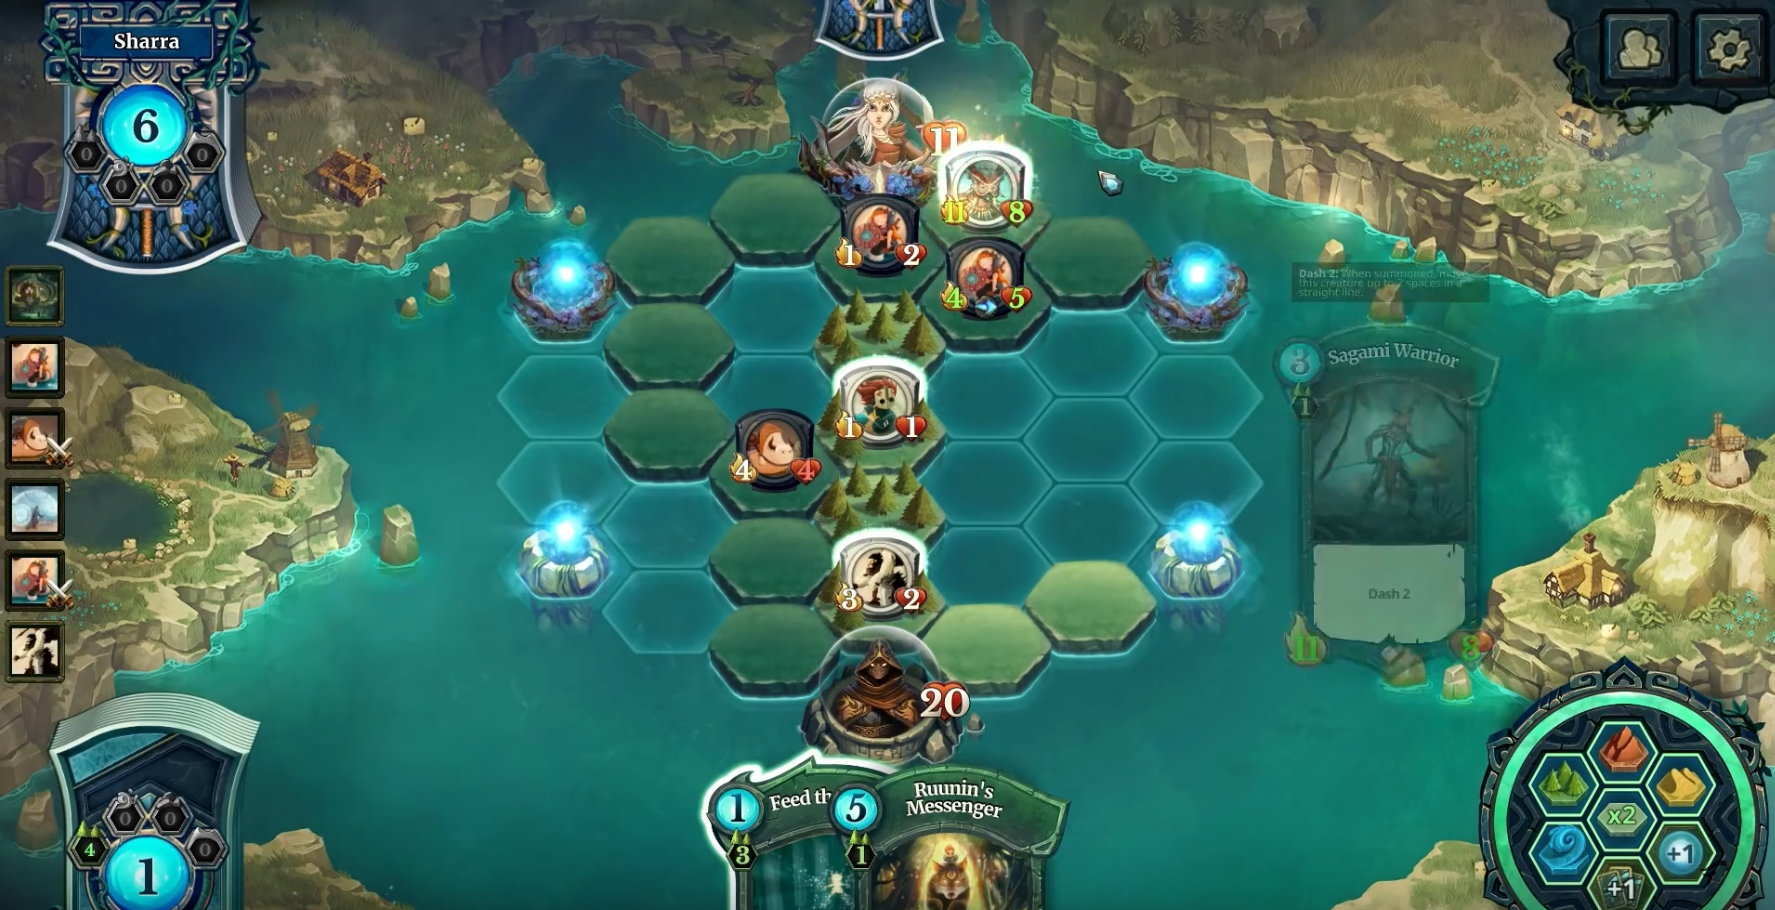 Faeria Will Be Available For Free On The Epic Games Store Later This Month